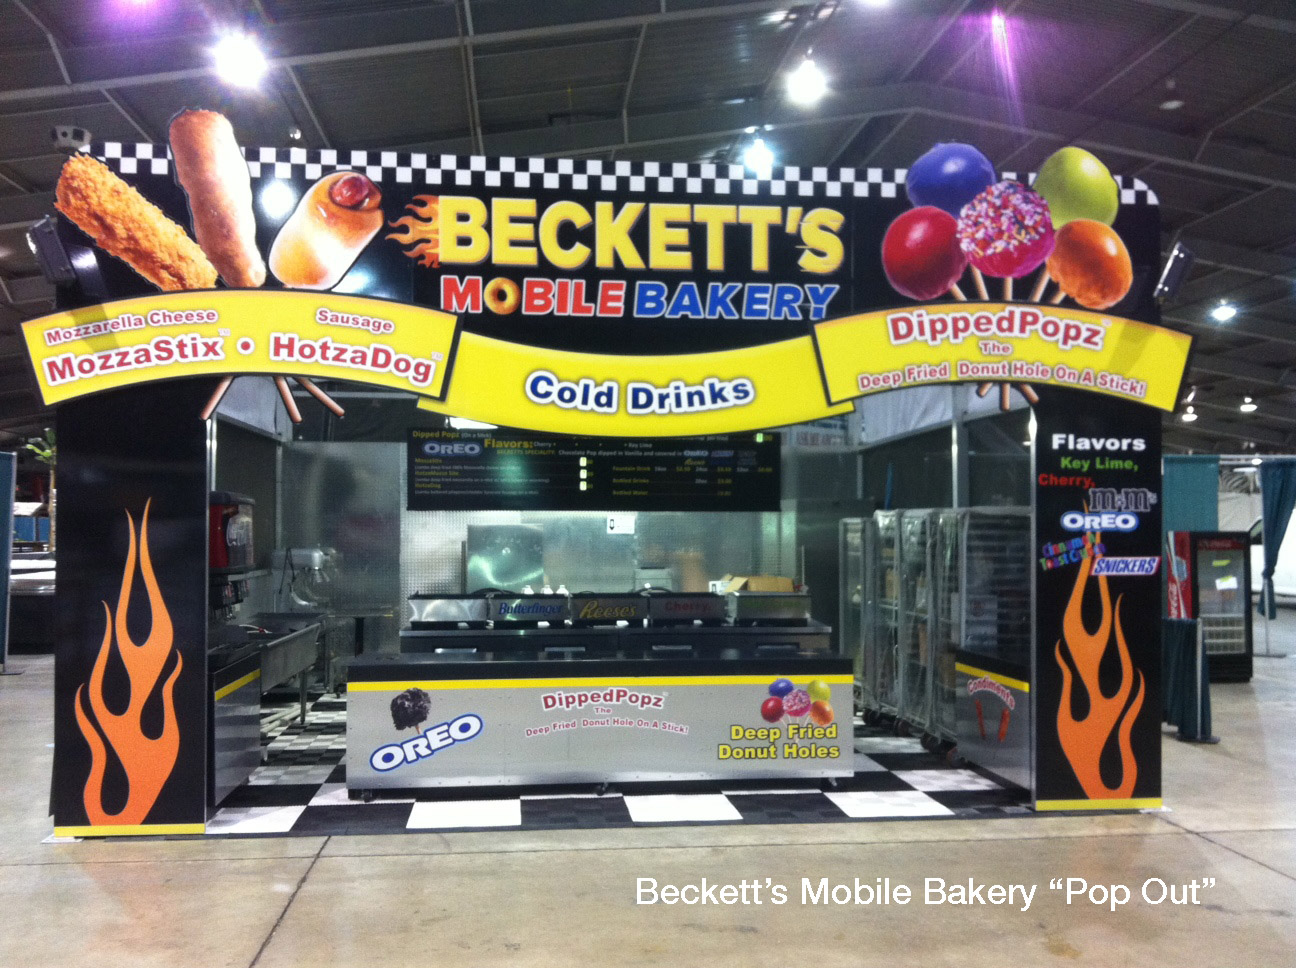 Becketts Mobile Bakery